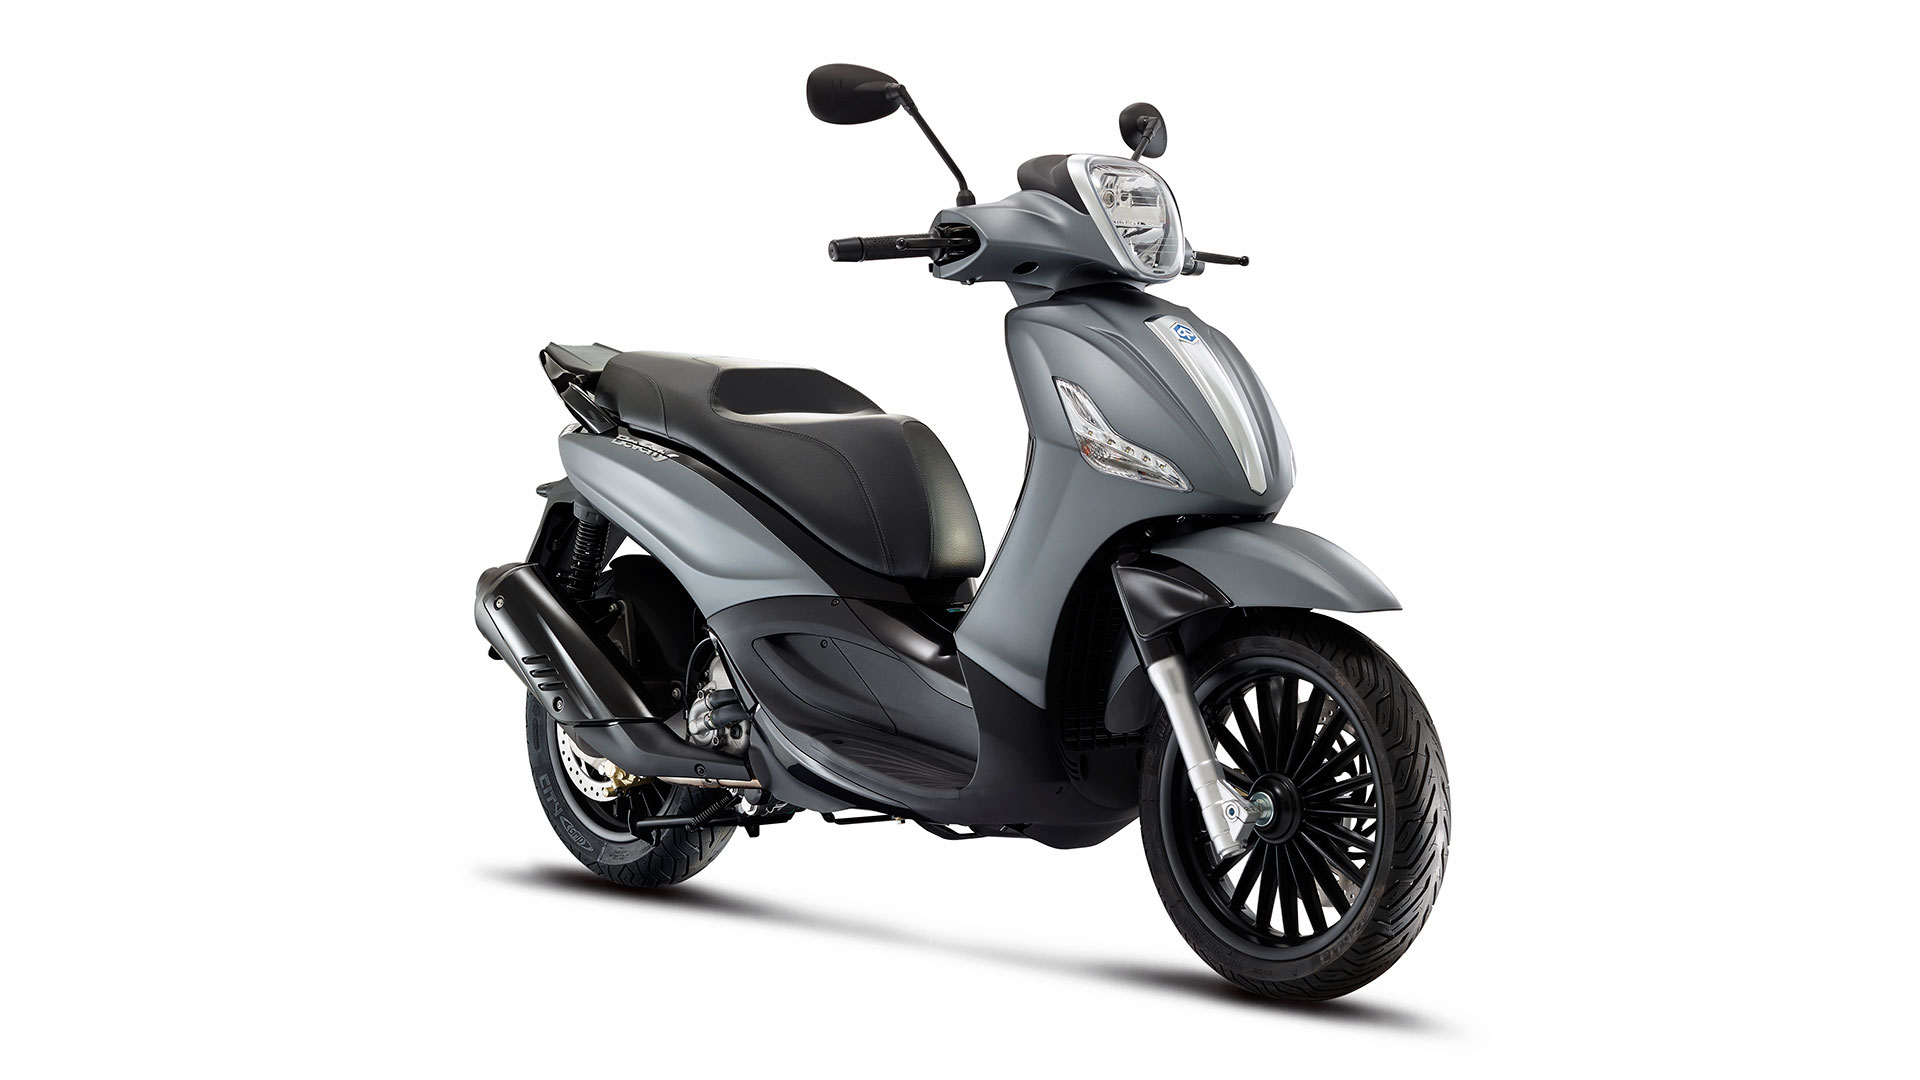 Achat Piaggio Beverly S ABS-ASR 300 cm3 neuf à Nice chez Scoot Center-1